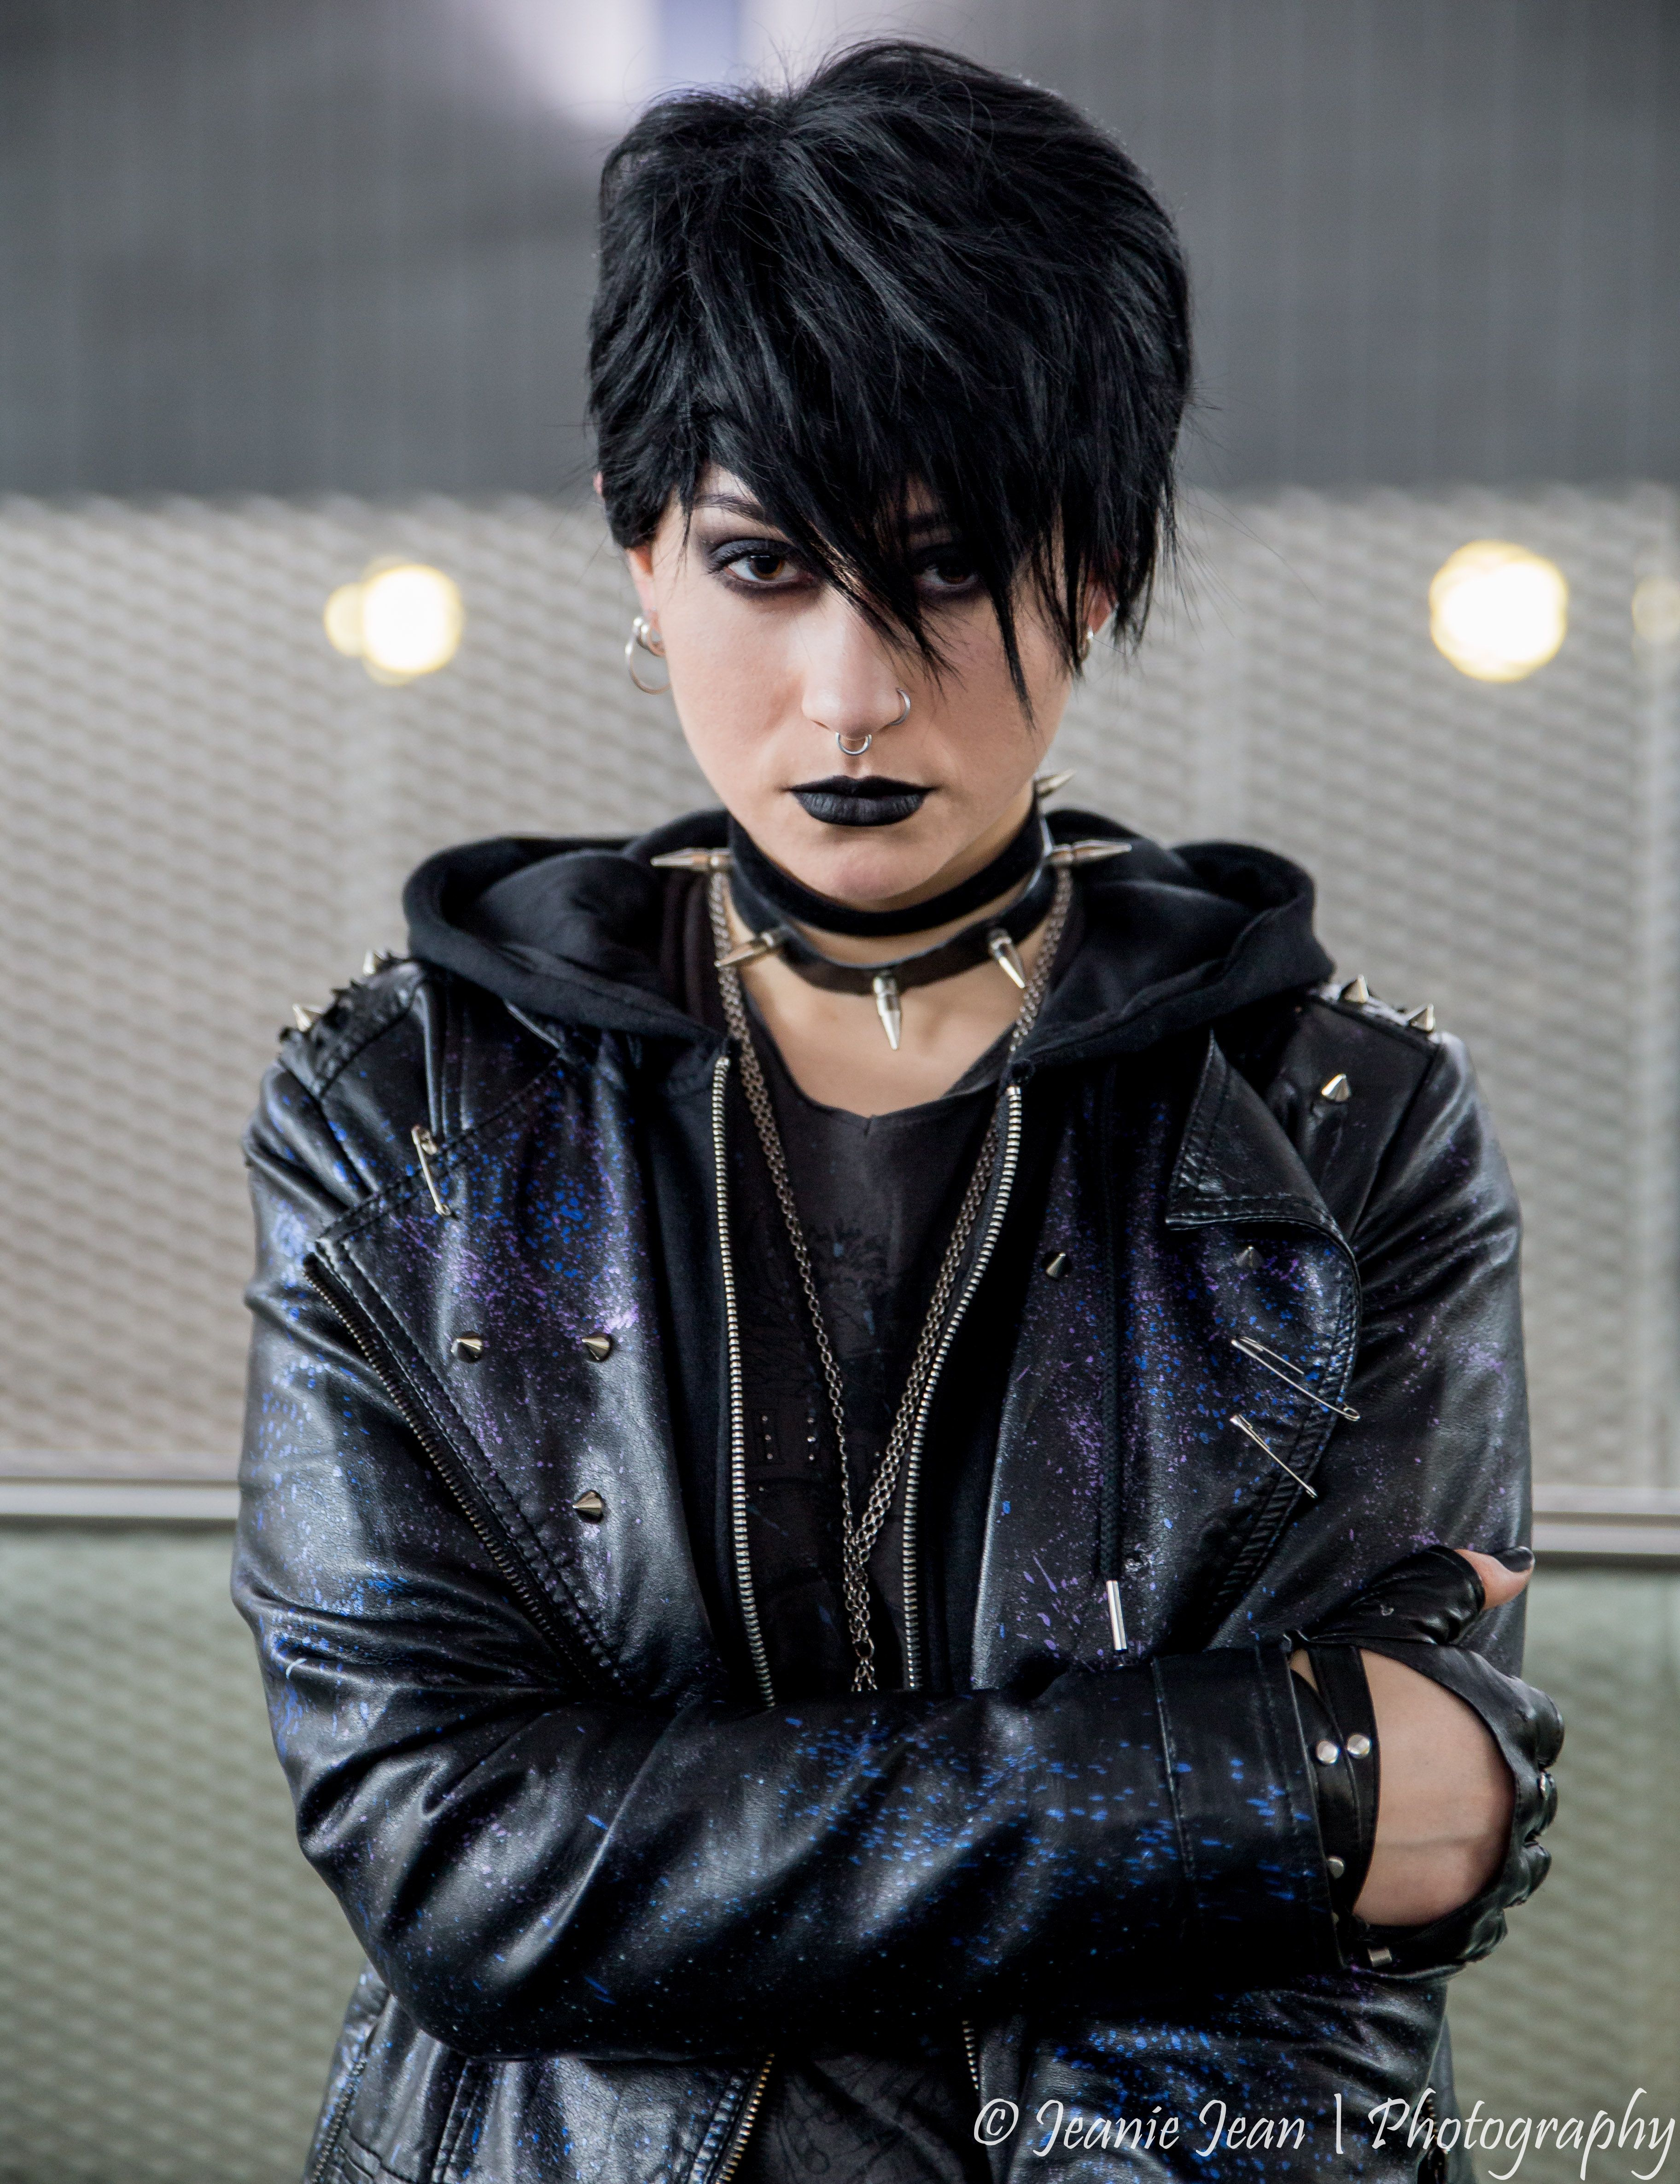 Noomi Repace cosplay version of Lisbeth Salander from the